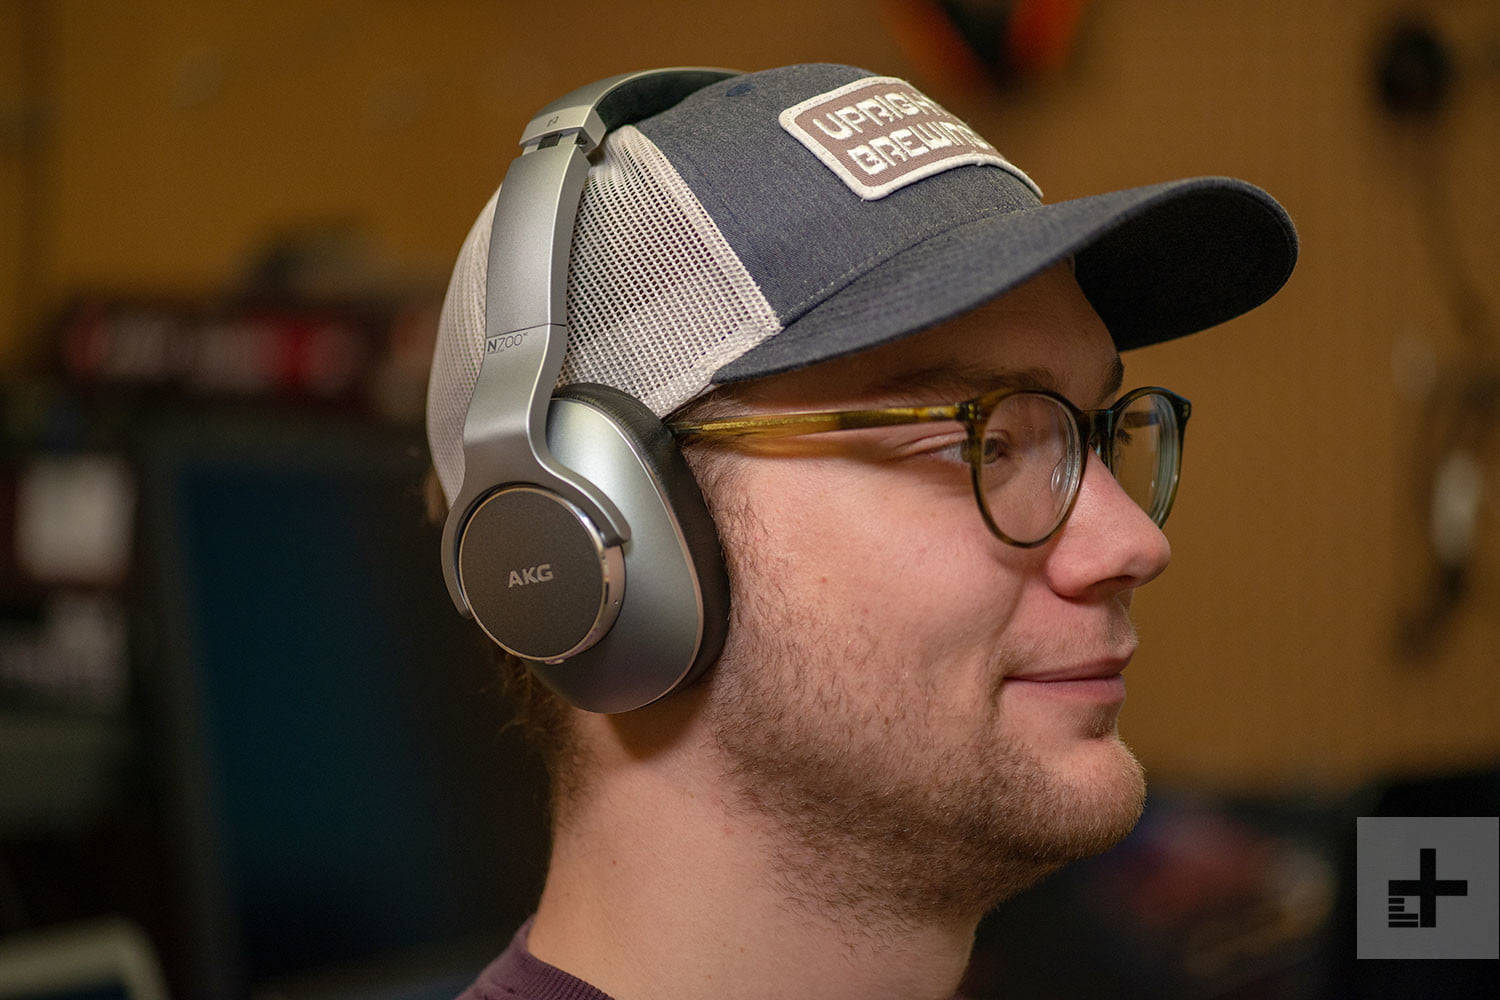 AKG's signature studio sound goes straight toyour head with these stunning cans